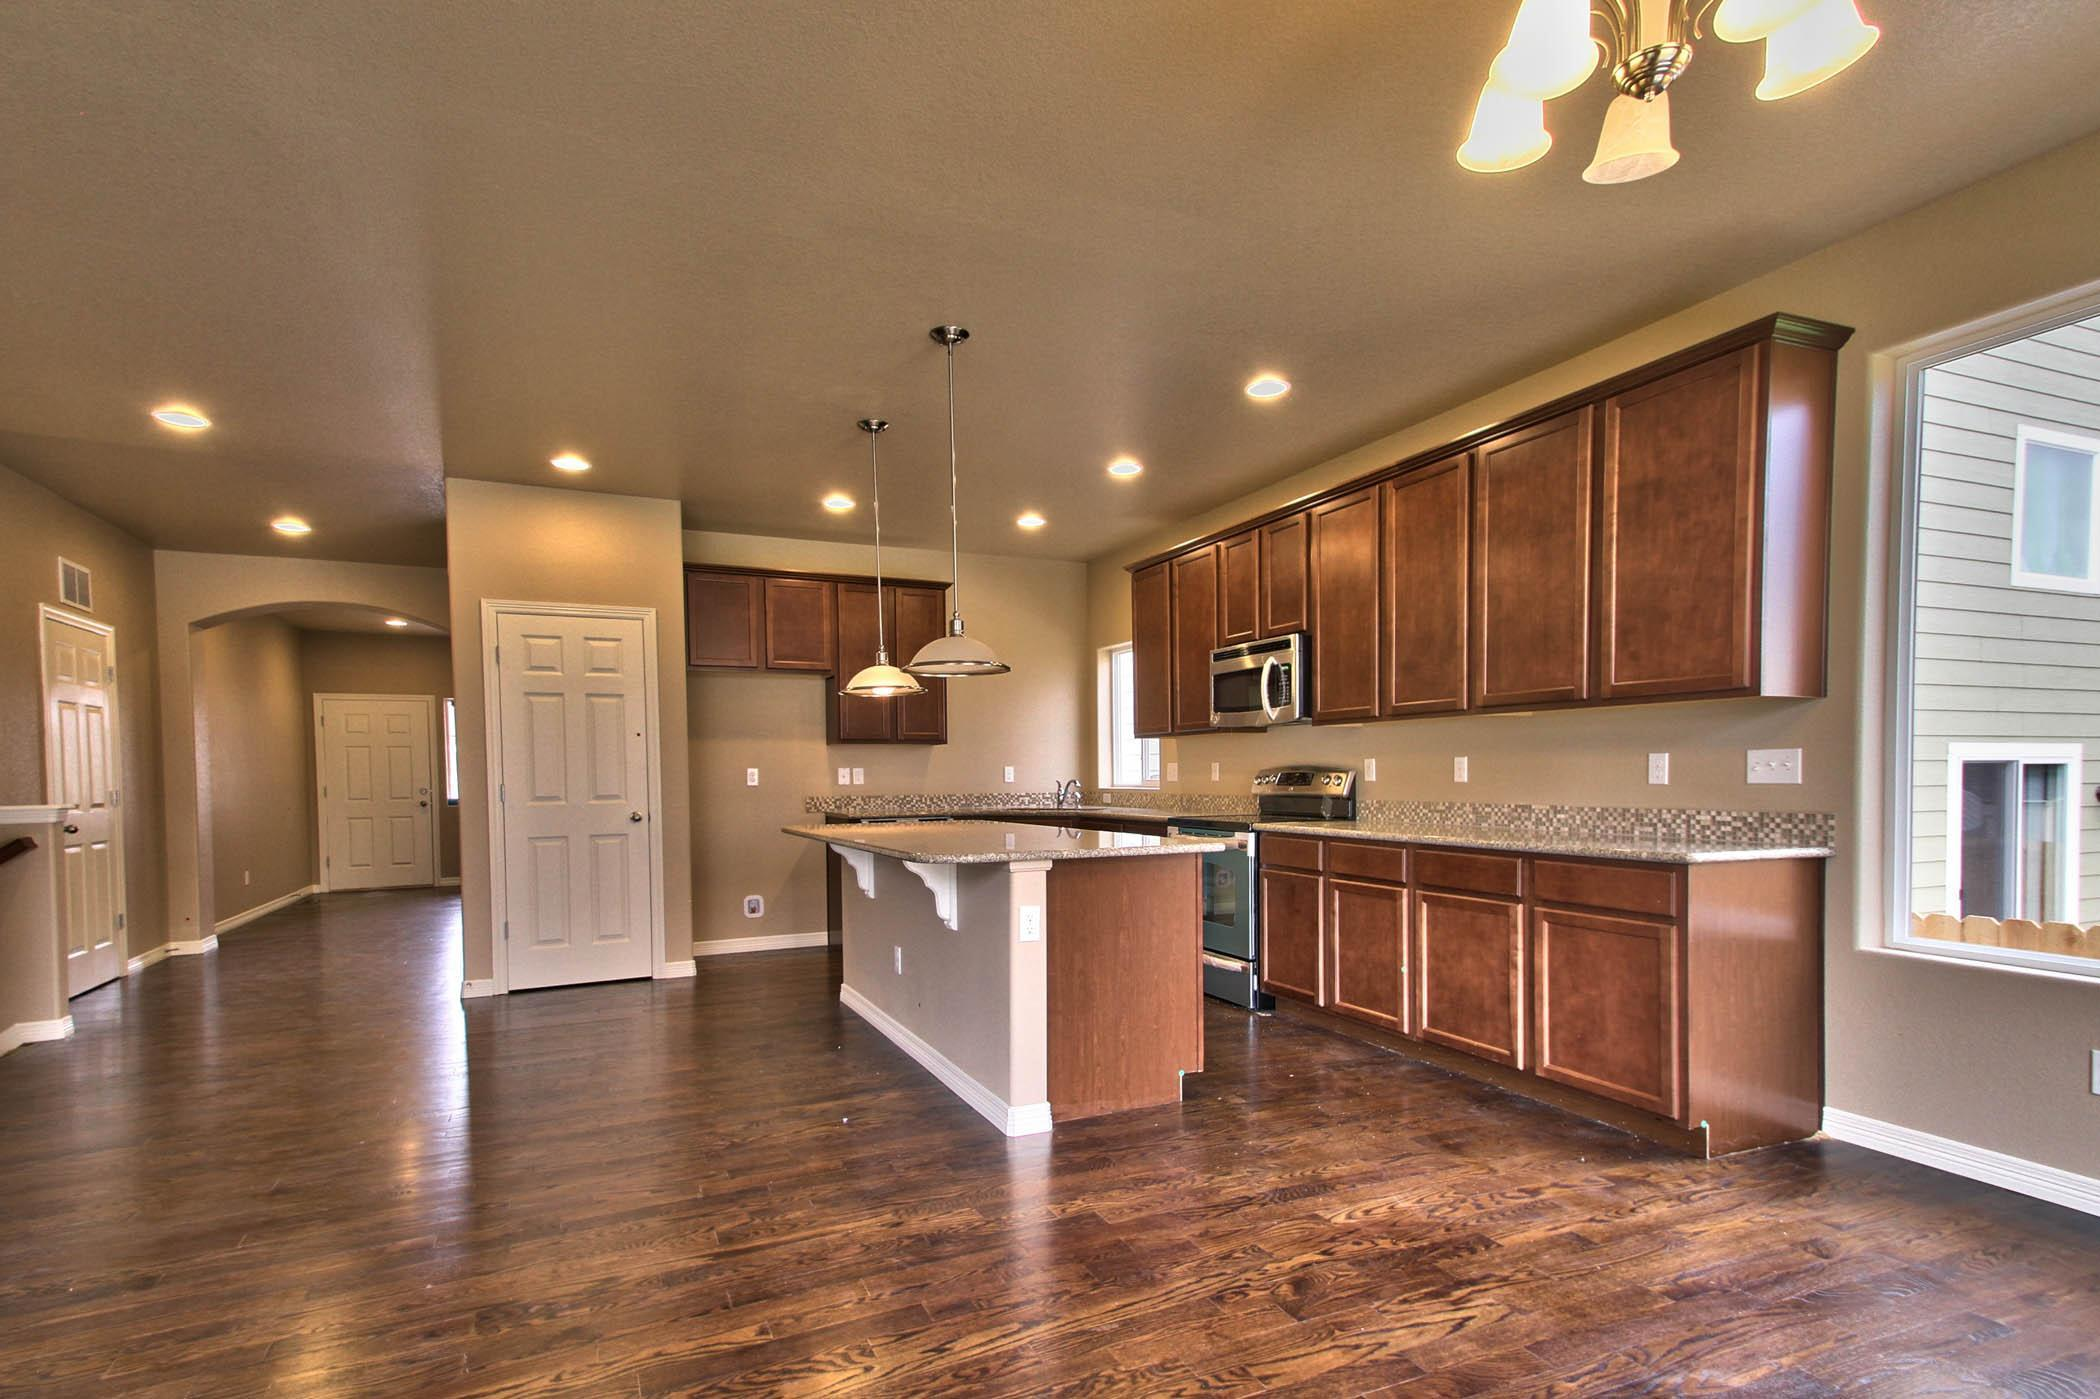 Kitchen featured in the Cutler (Slab) By Reunion Homes in Colorado Springs, CO